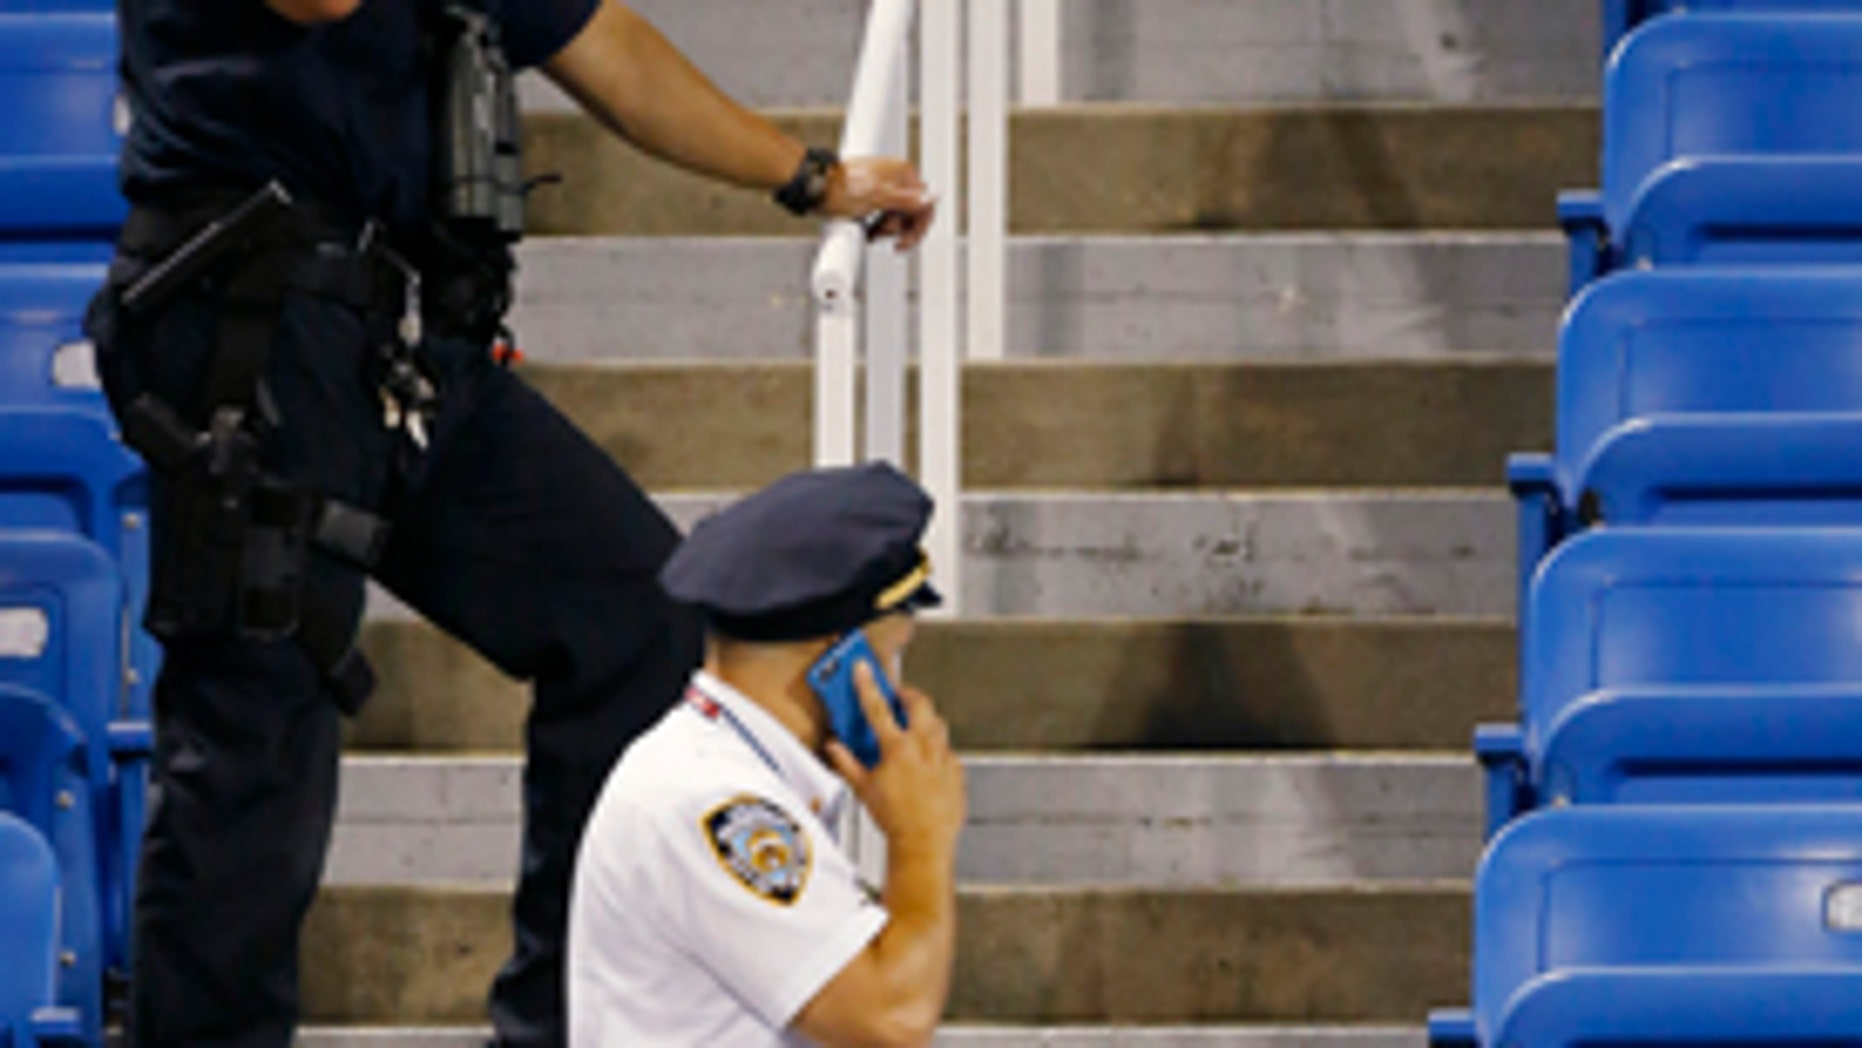 Sept. 3, 2015: Police officers investigate the southwest corner of Louis Armstrong Stadium after a drone flew over the court, buzzing the players during a match between Flavia Pennetta and Monica Niculescu during the second round of the U.S. Open tennis tournament in New York. The drone crashed into the seats and can be seen to the right of the police officer on his phone. (AP Photo/Kathy Willens)